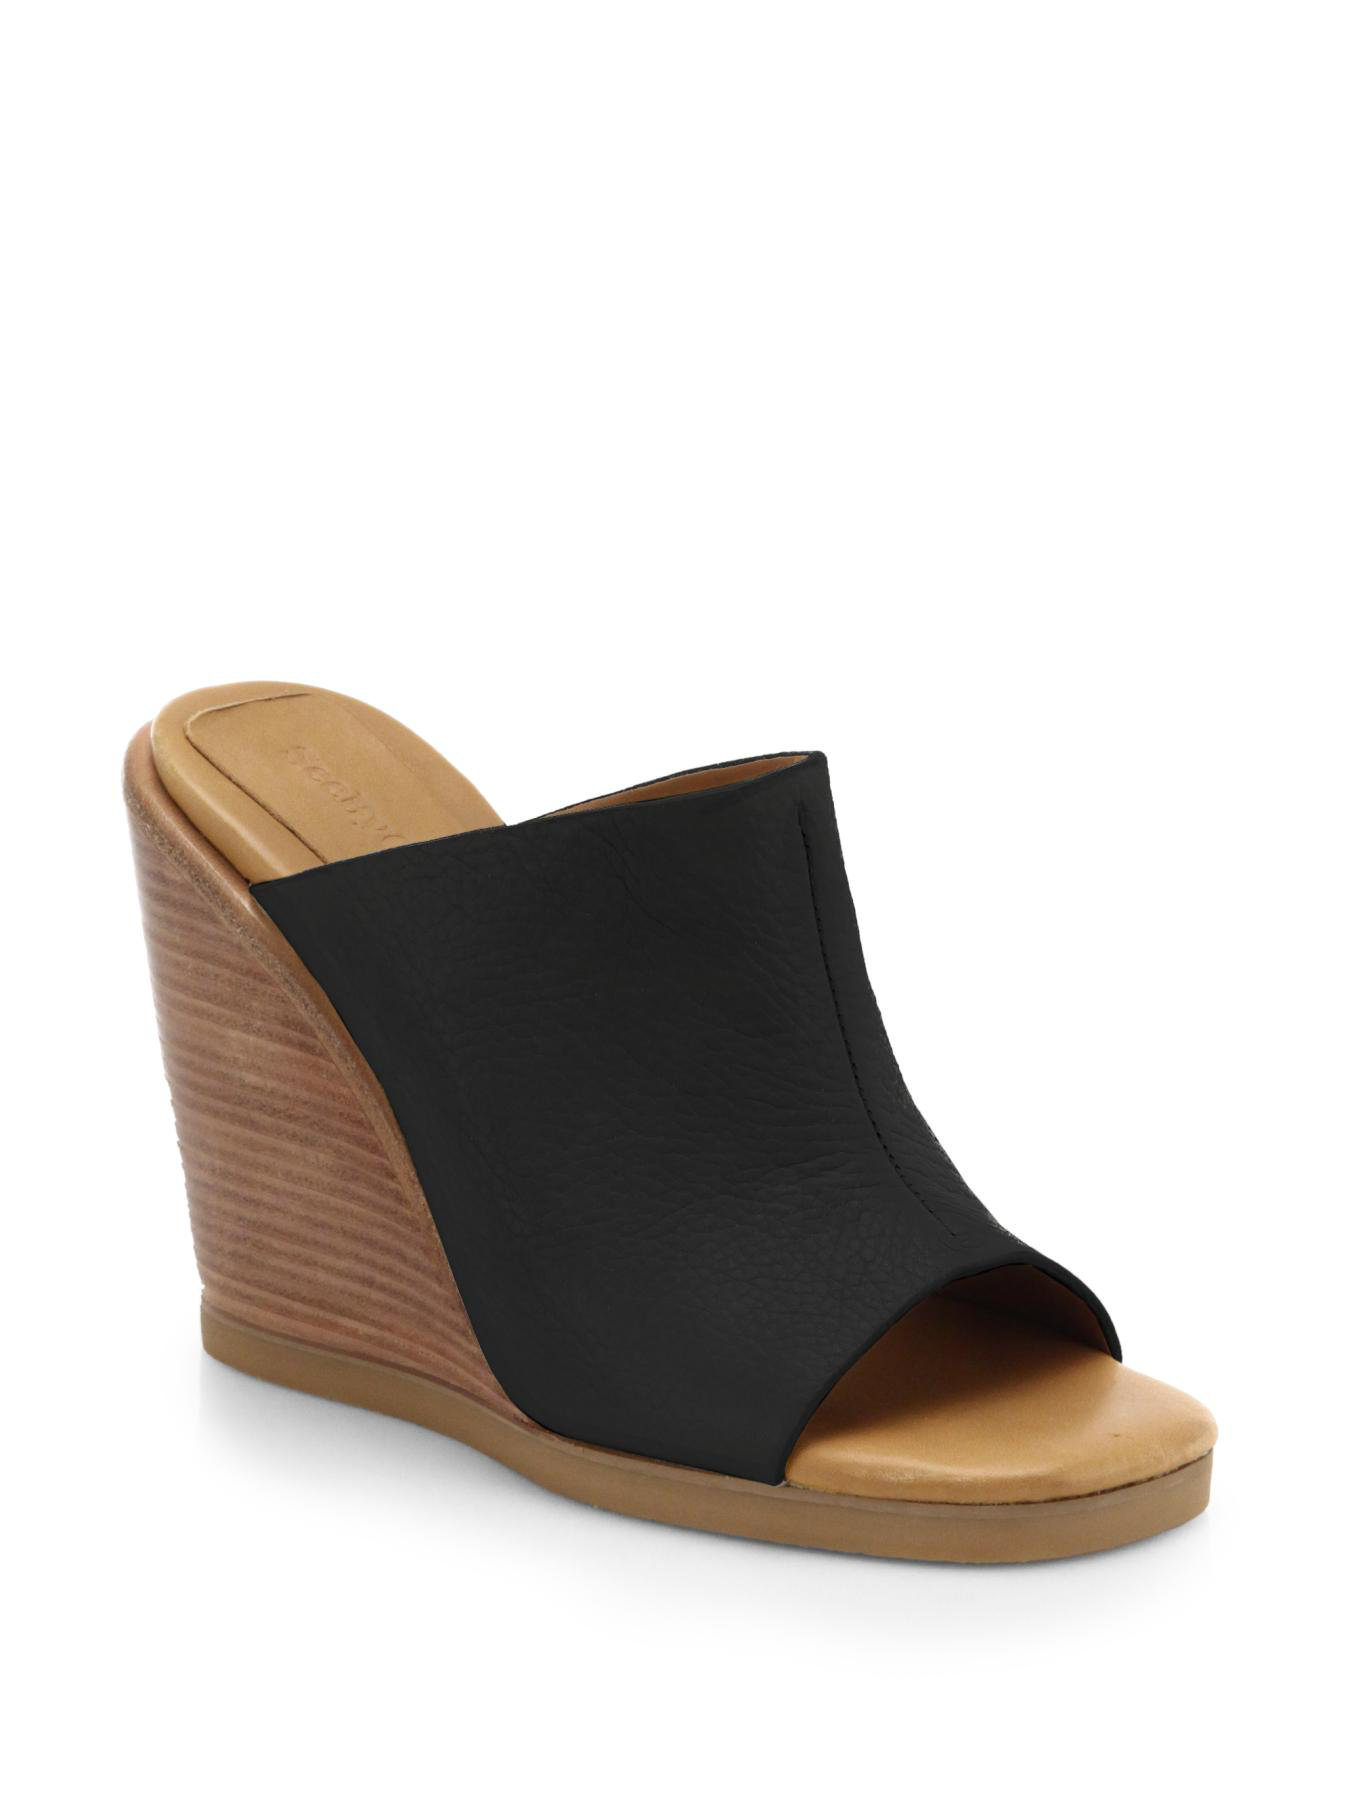 See By Chlo 233 Leather Wedge Mules In Black Lyst